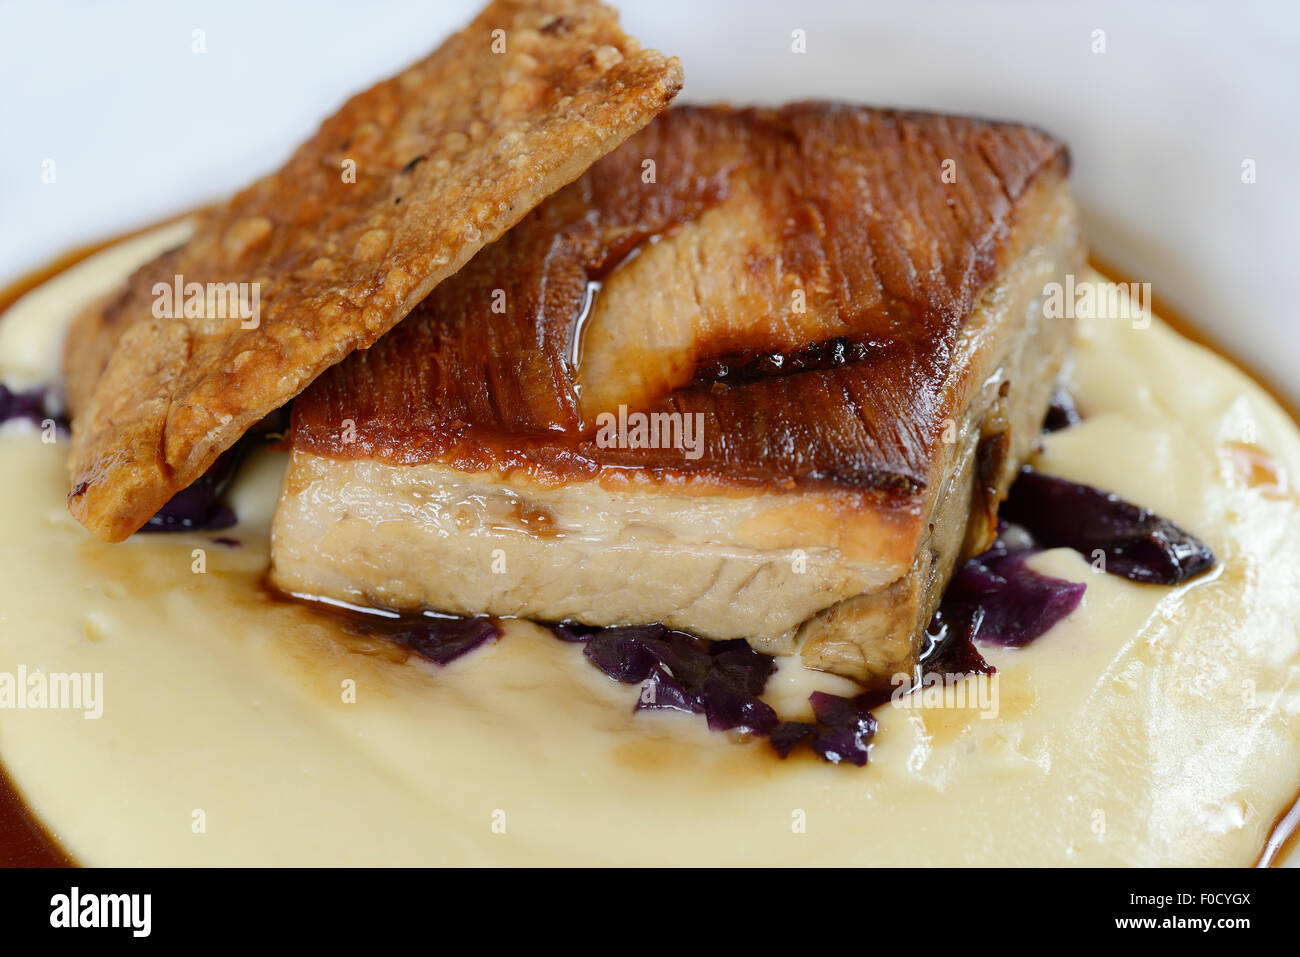 Pork belly with mash potato, red cabbage and an apple jus. - Stock Image